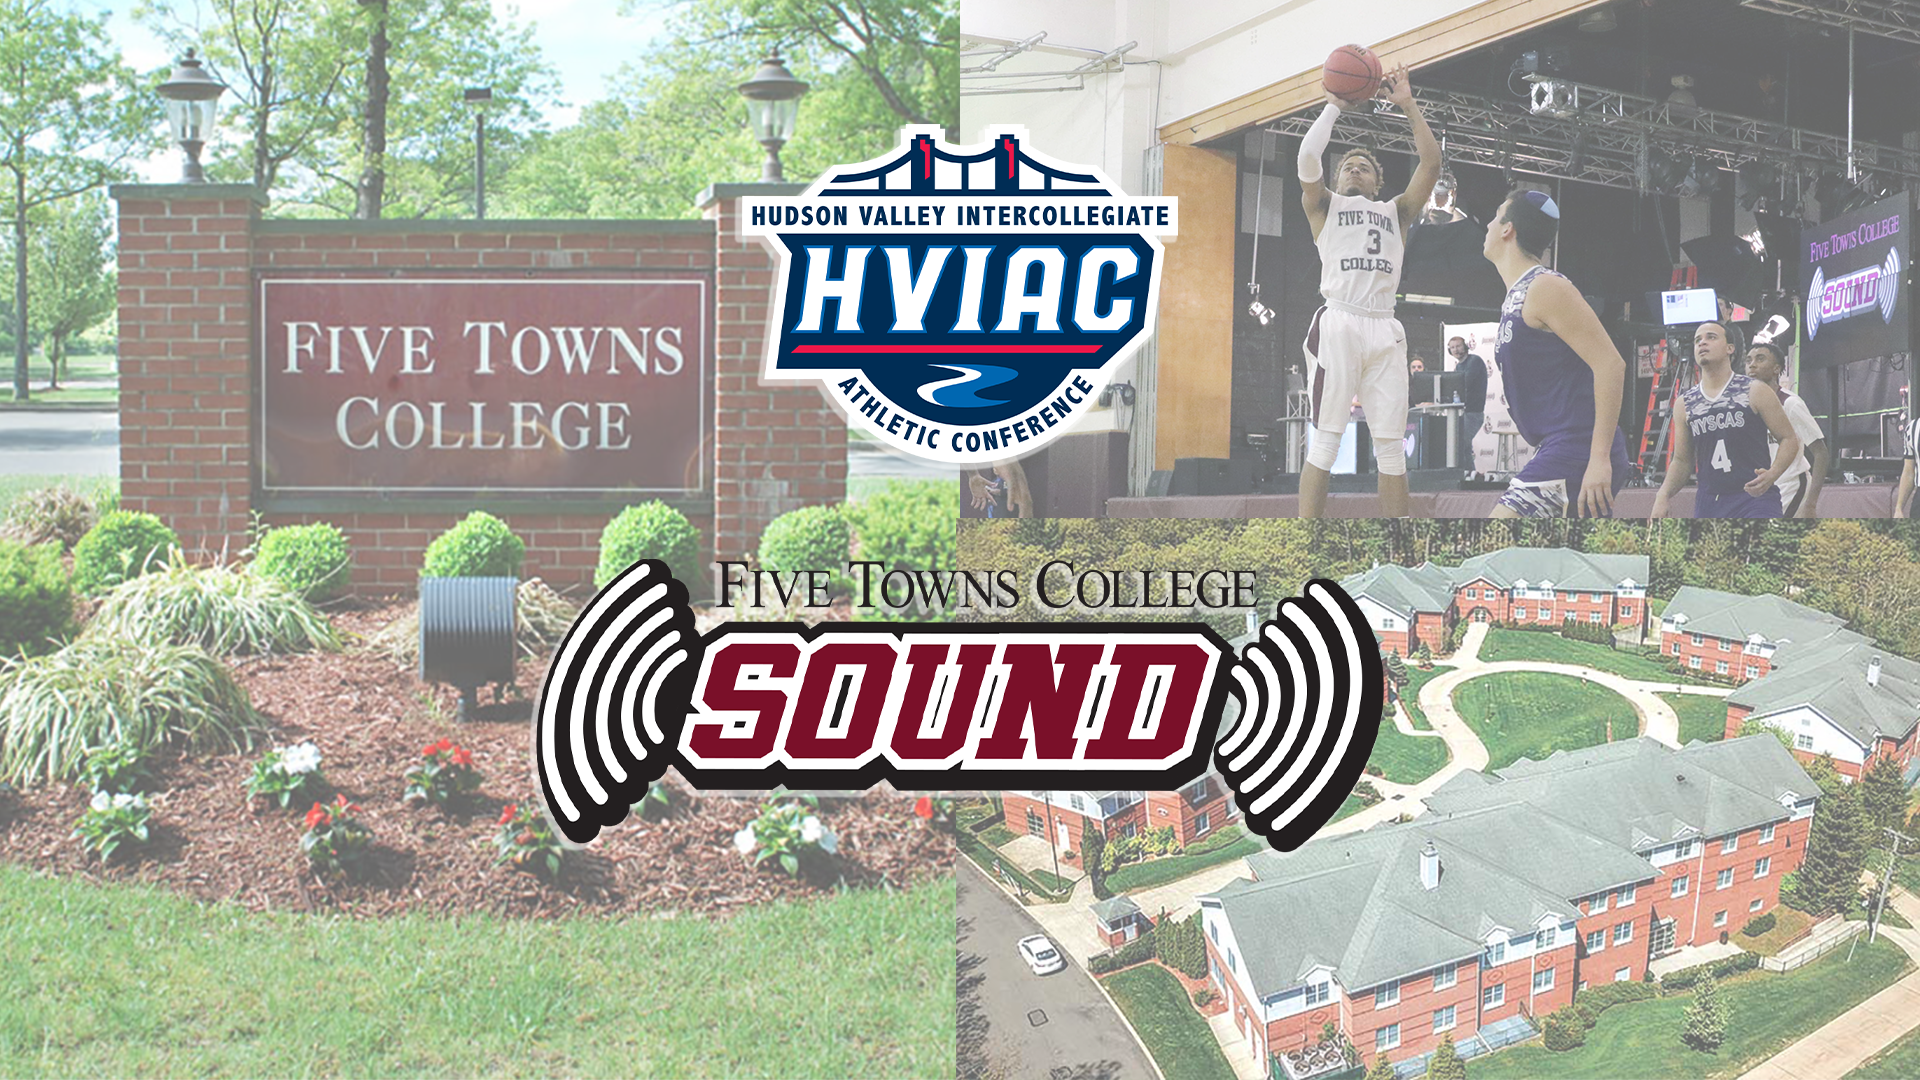 Five Towns College Joins HVIAC for 2019-20 Season